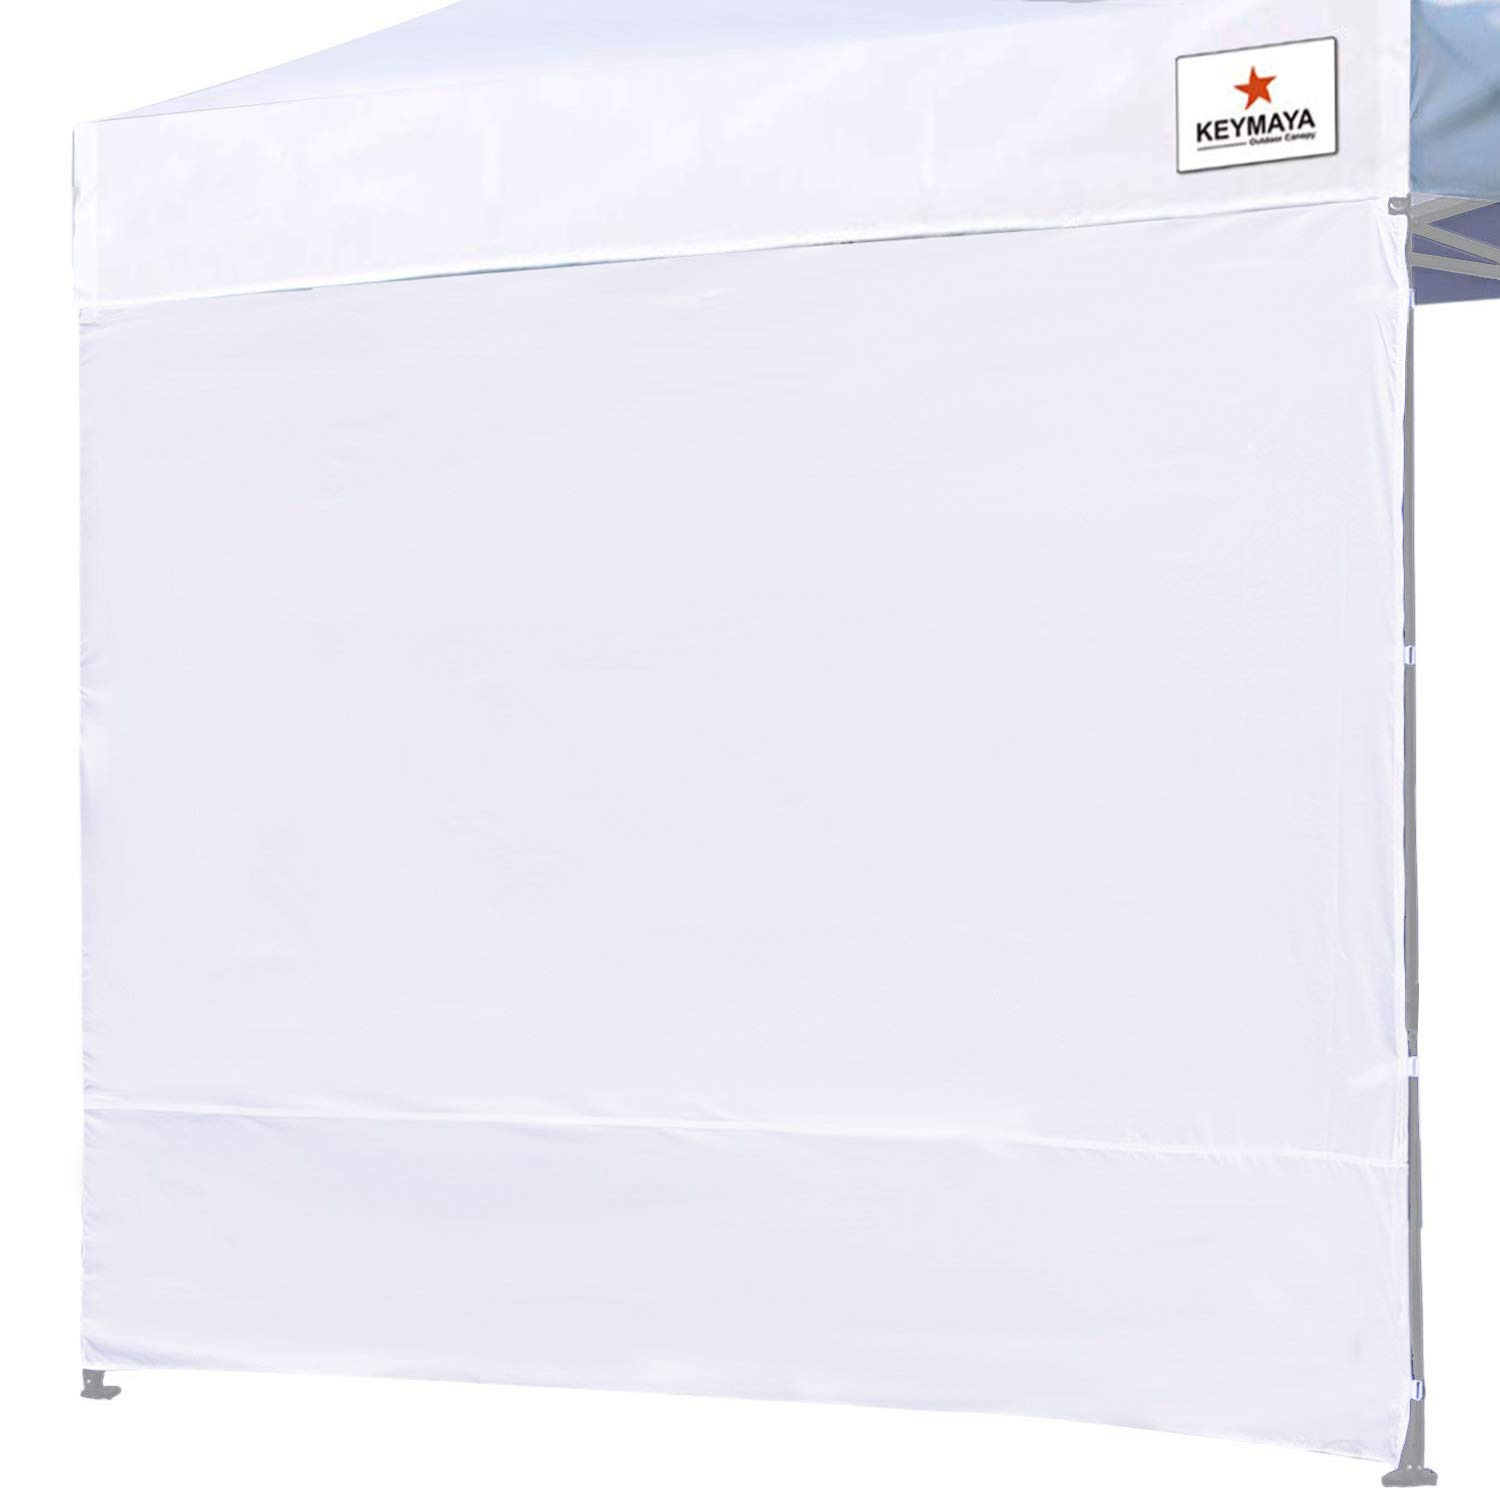 Keymaya Instant Canopy SunWall for 10x10 Feet, 10x20 Feet Straight Leg pop up Canopy, 1 Pack Sidewall Only, White